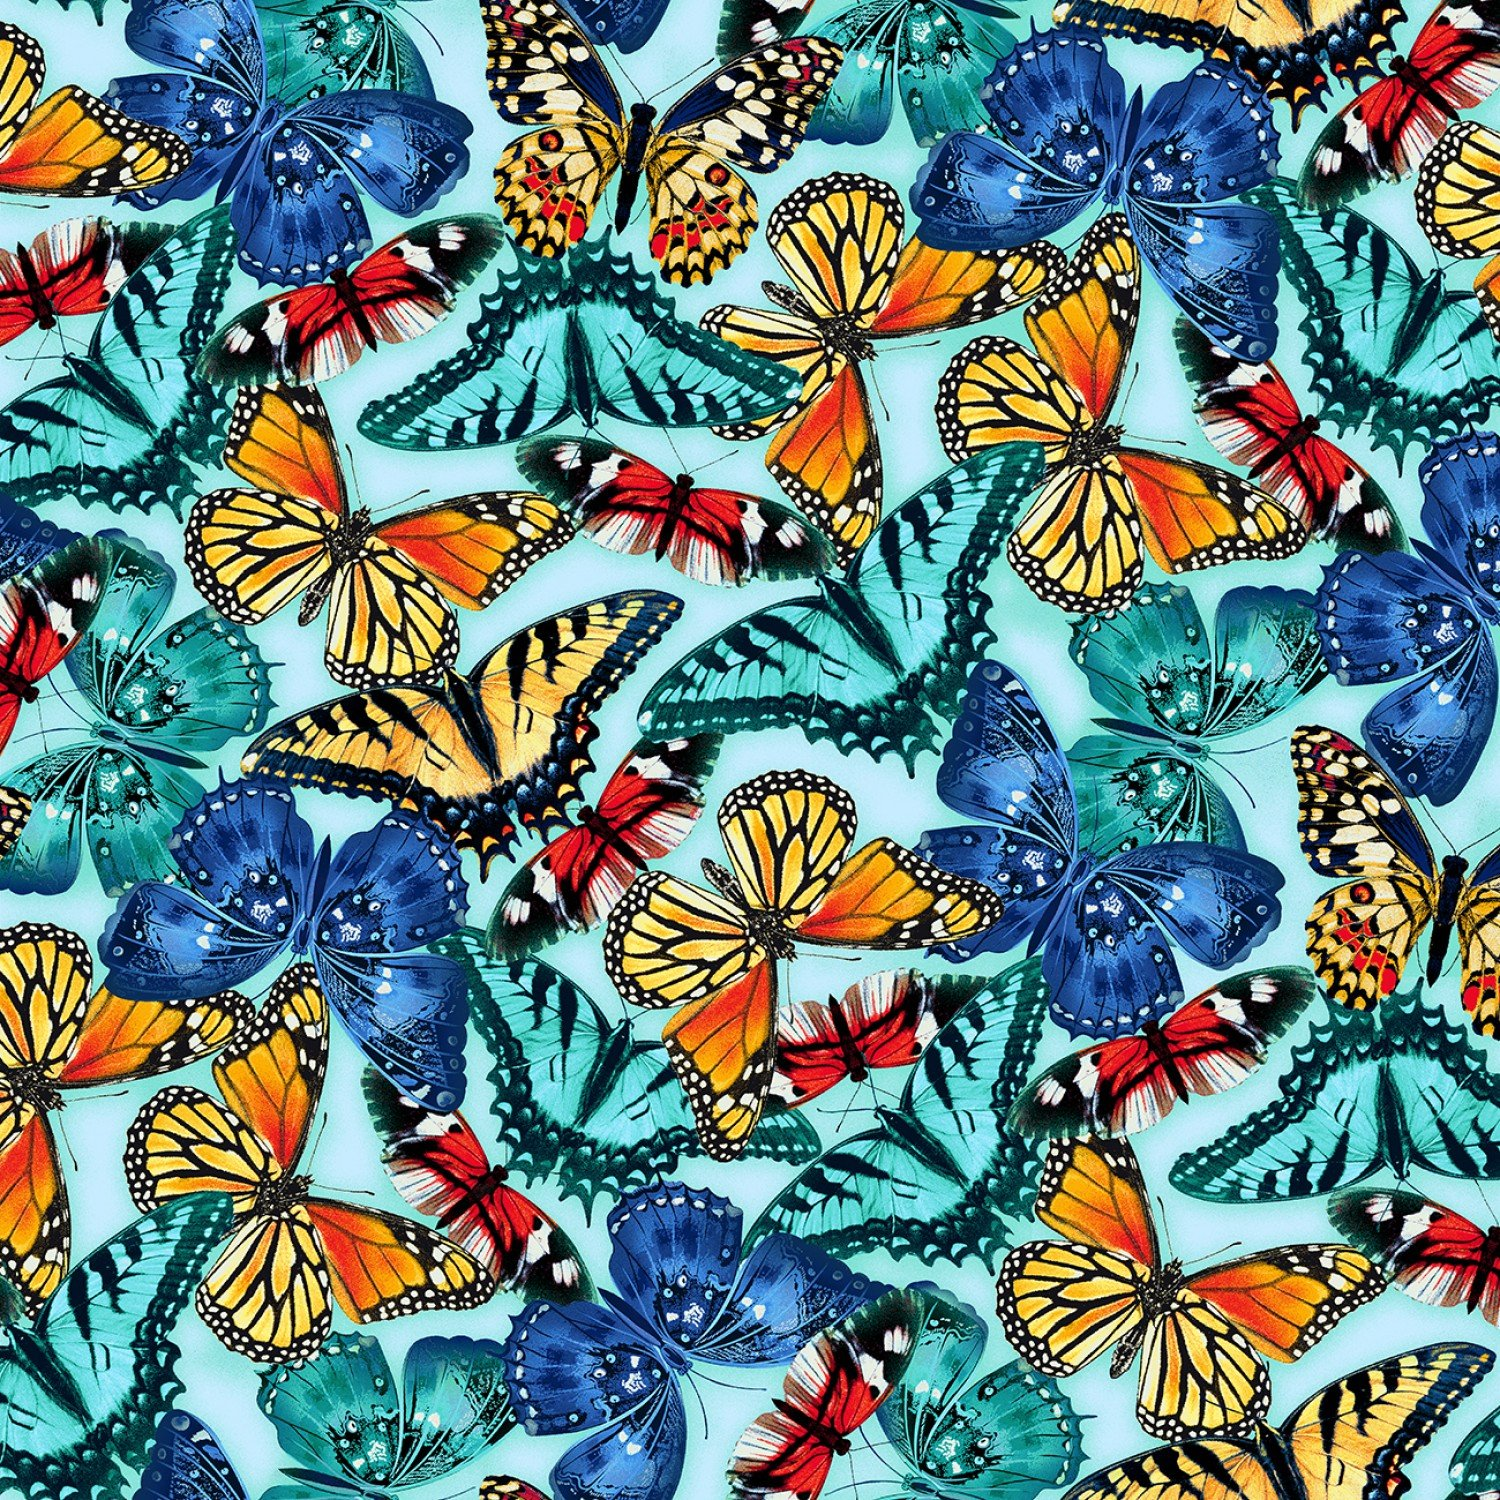 Butterfly Vortex, Large Blue